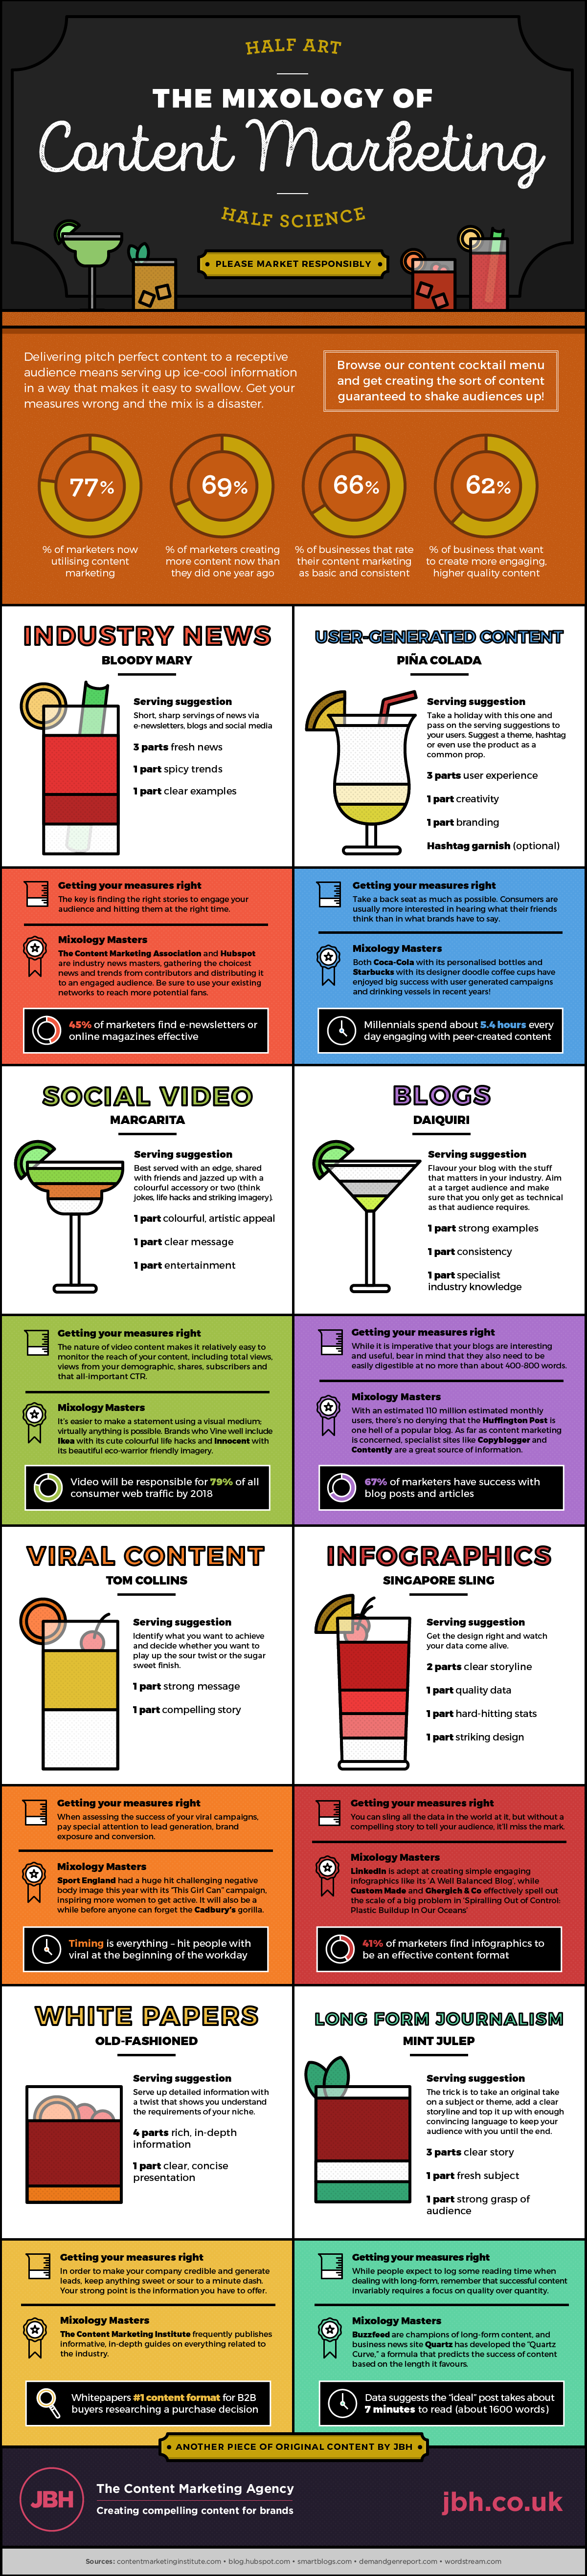 8_Tactics_for_Mixing_Up_Your_Content_Marketing_Strategy_.png